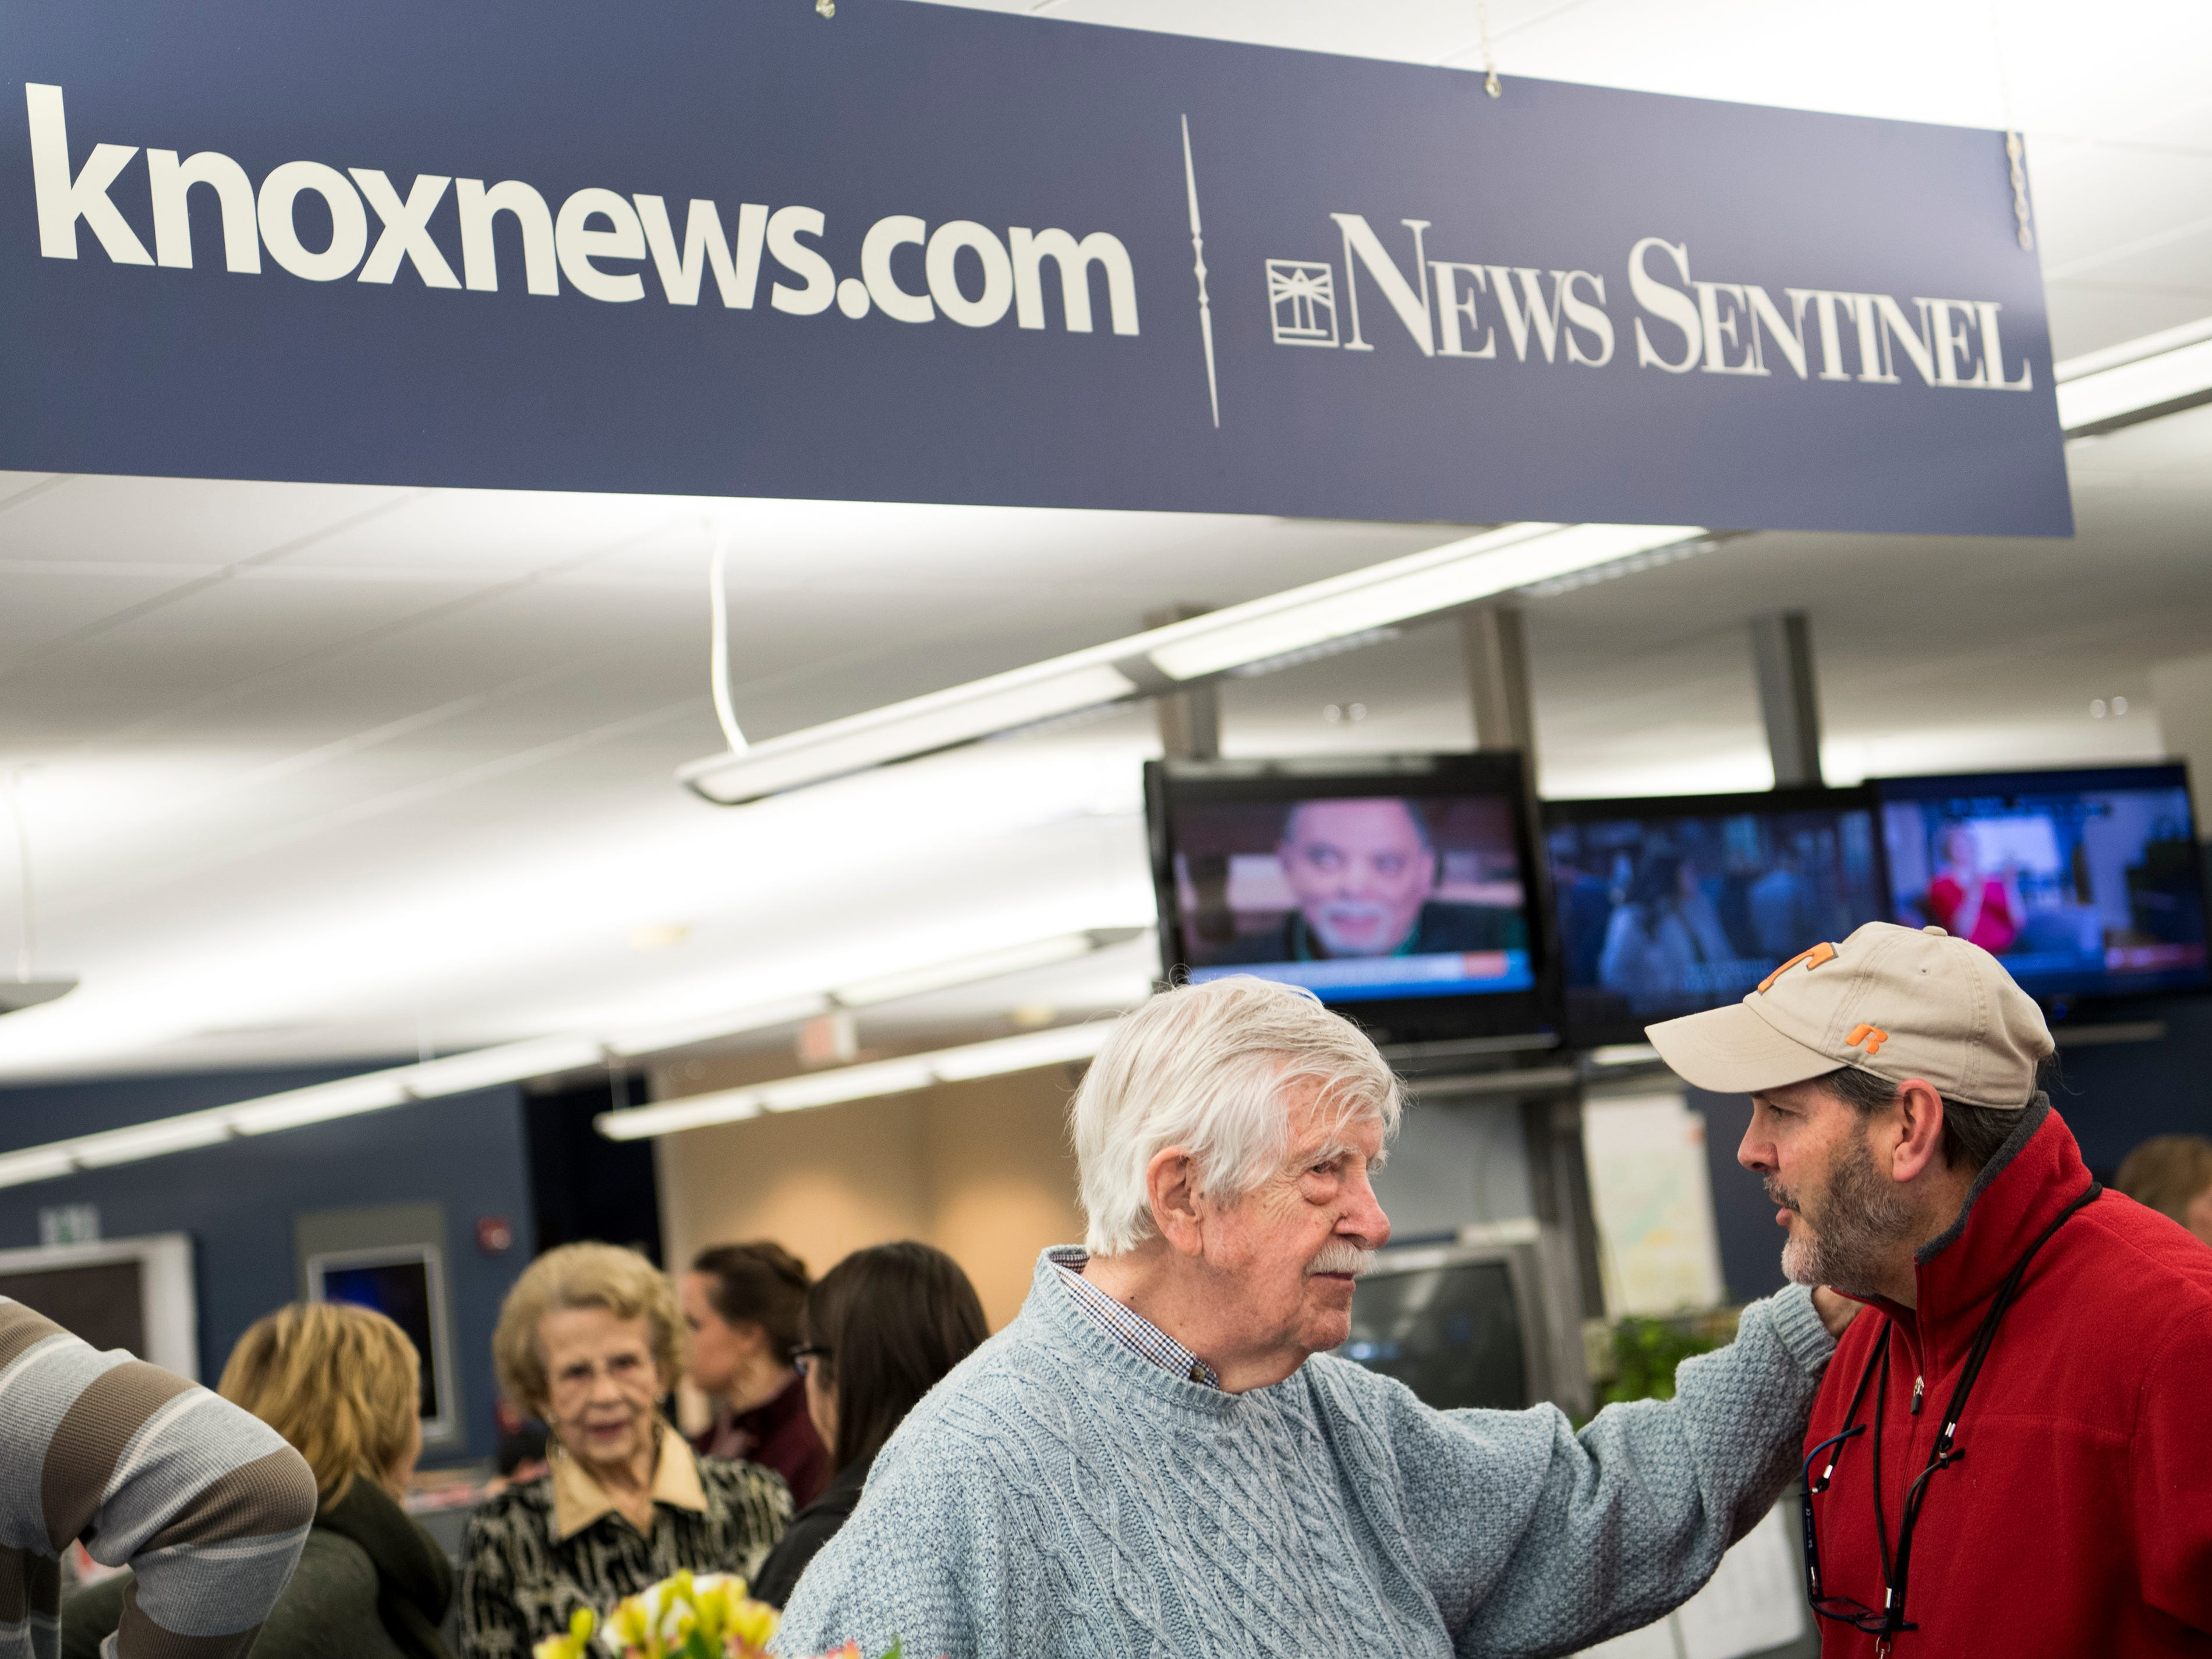 The Knoxville News Sentinel celebrated the retirements of executive editor Jack McElroy and cartoonist Charlie Daniel in the News Sentinel newsroom on Friday, February 1, 2019.